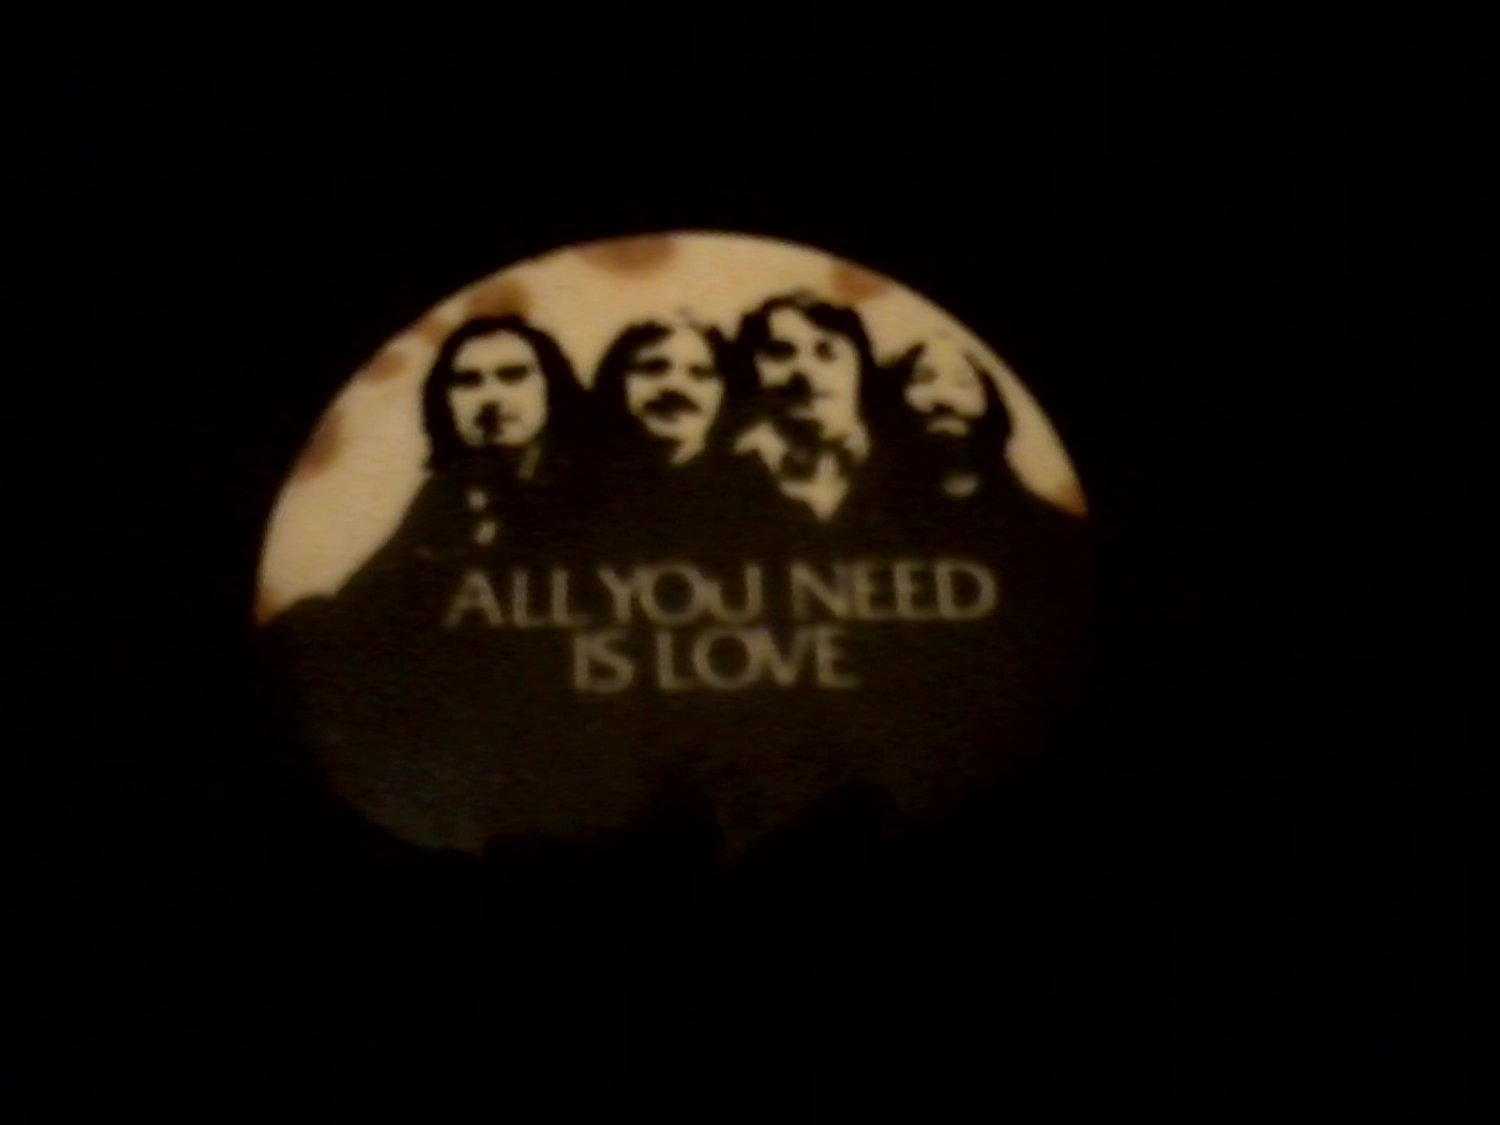 Beatles All You Need Is Love OLD op '80s Promo Pinback